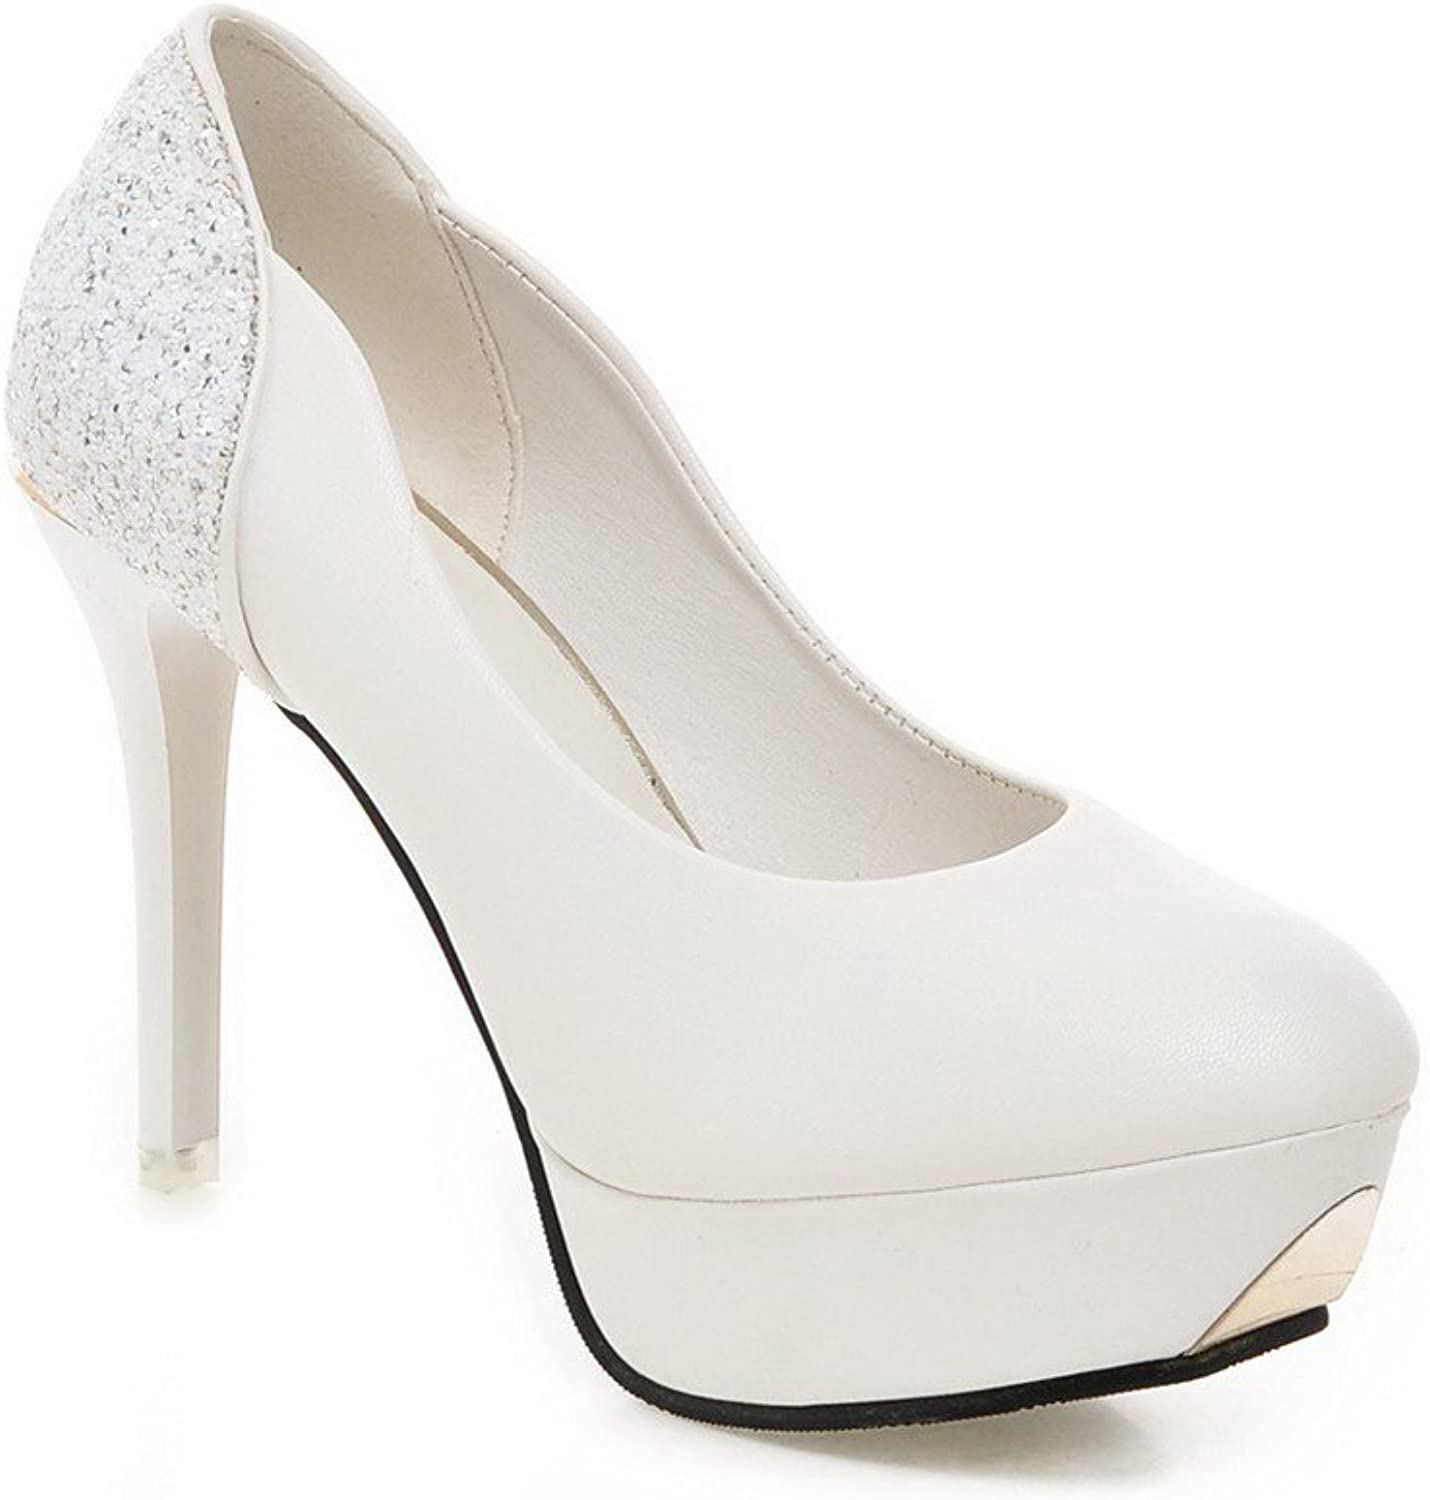 WeenFashion Women's Pu Spikes Stilettos Round Closed Toe Solid Pull On Pumps-shoes